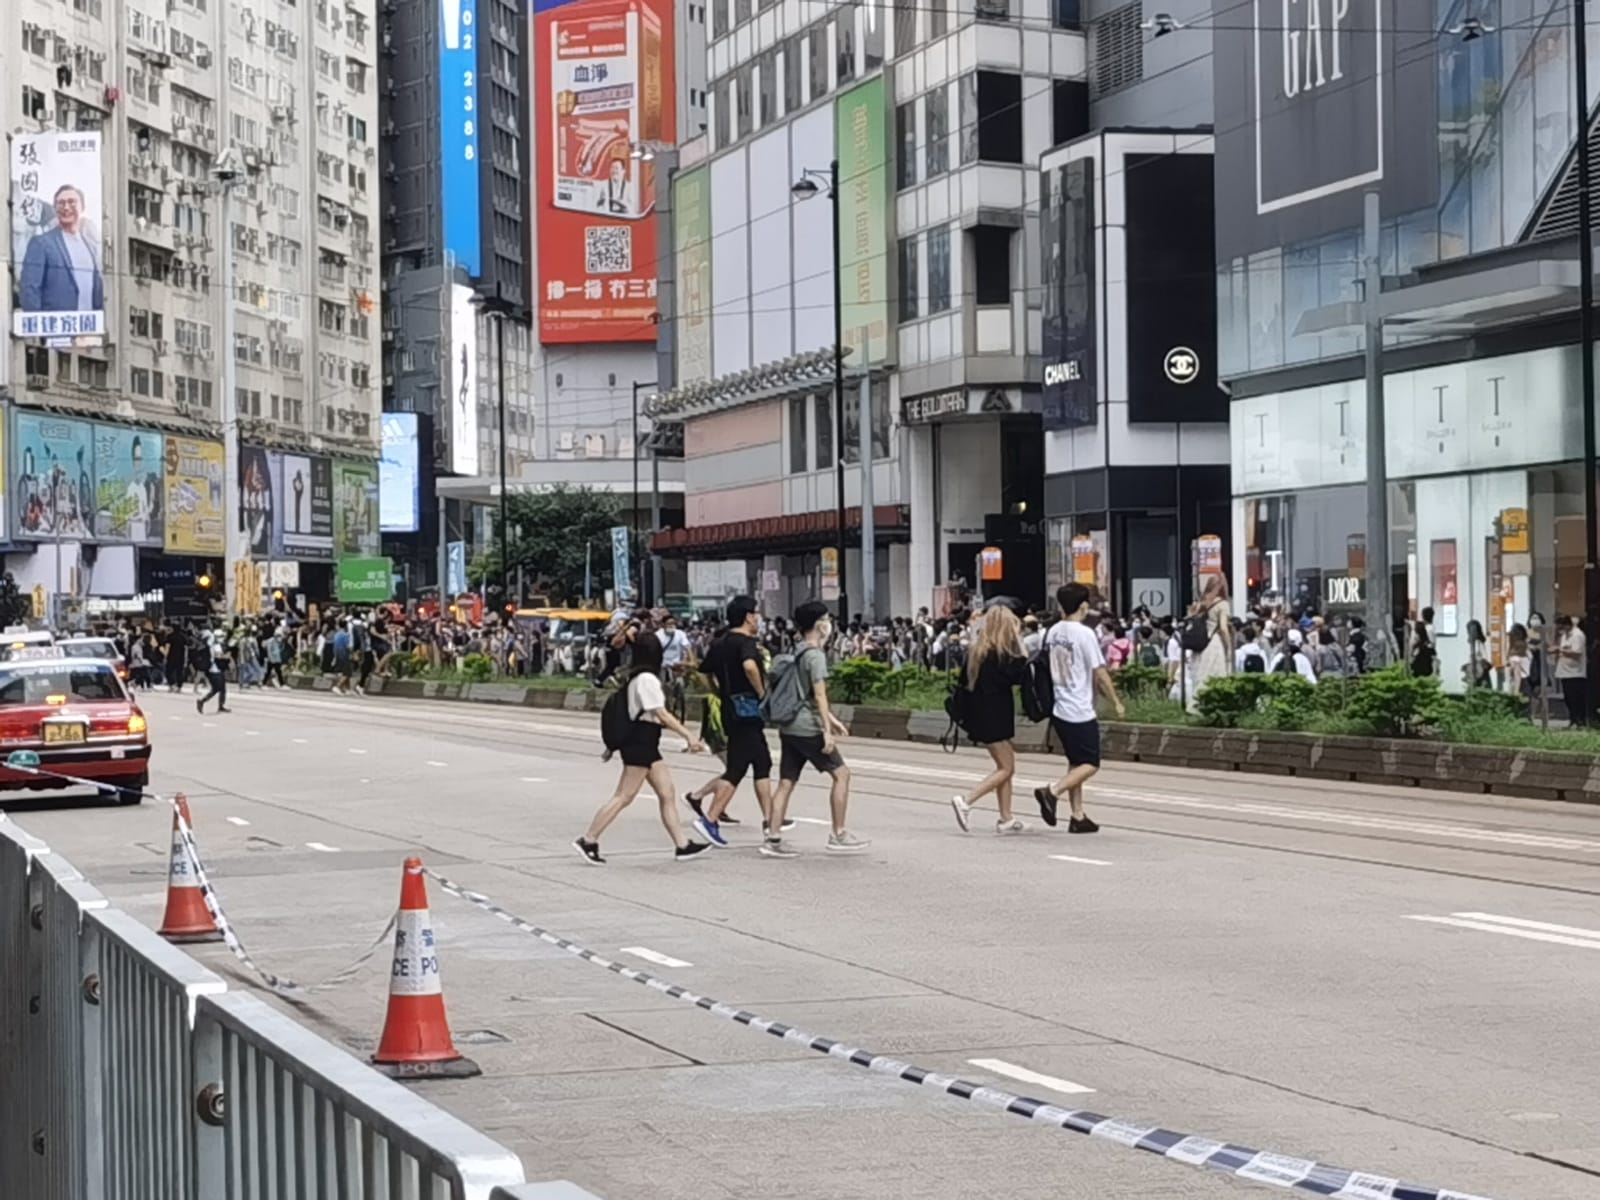 30 arrested in HK's Causeway Bay for illegal activities